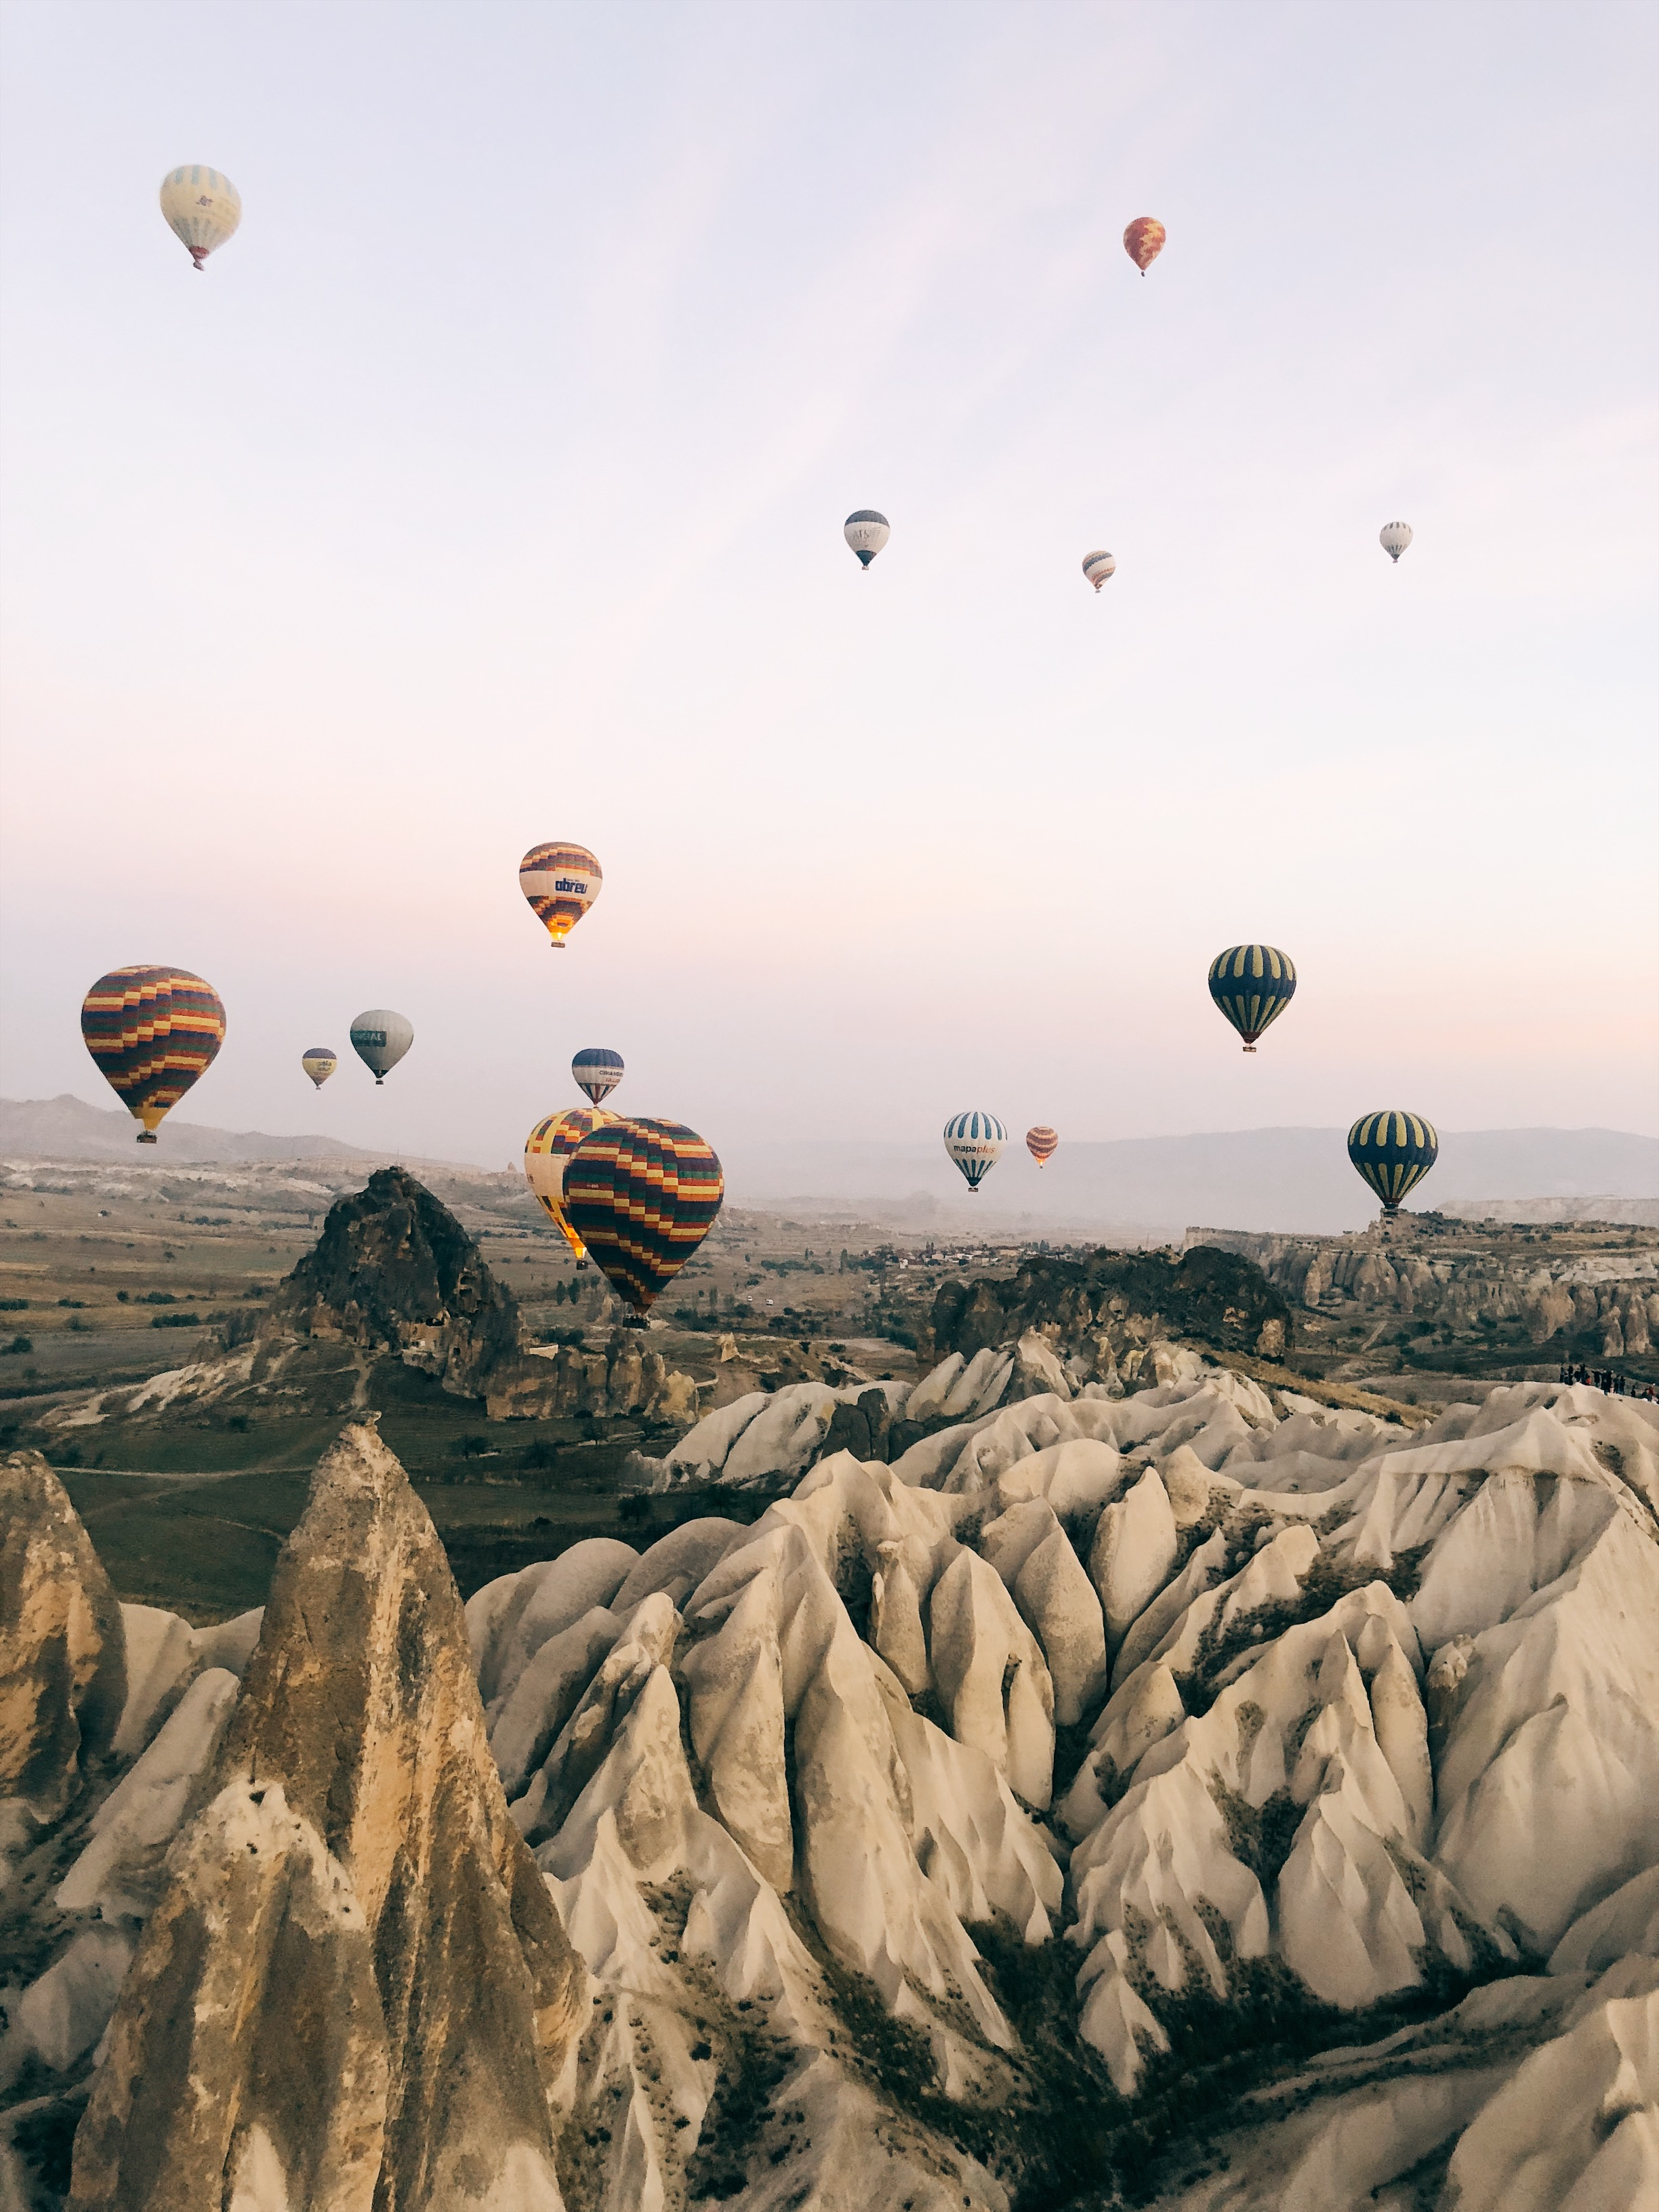 magical view of Capadoccia with hot air balloons